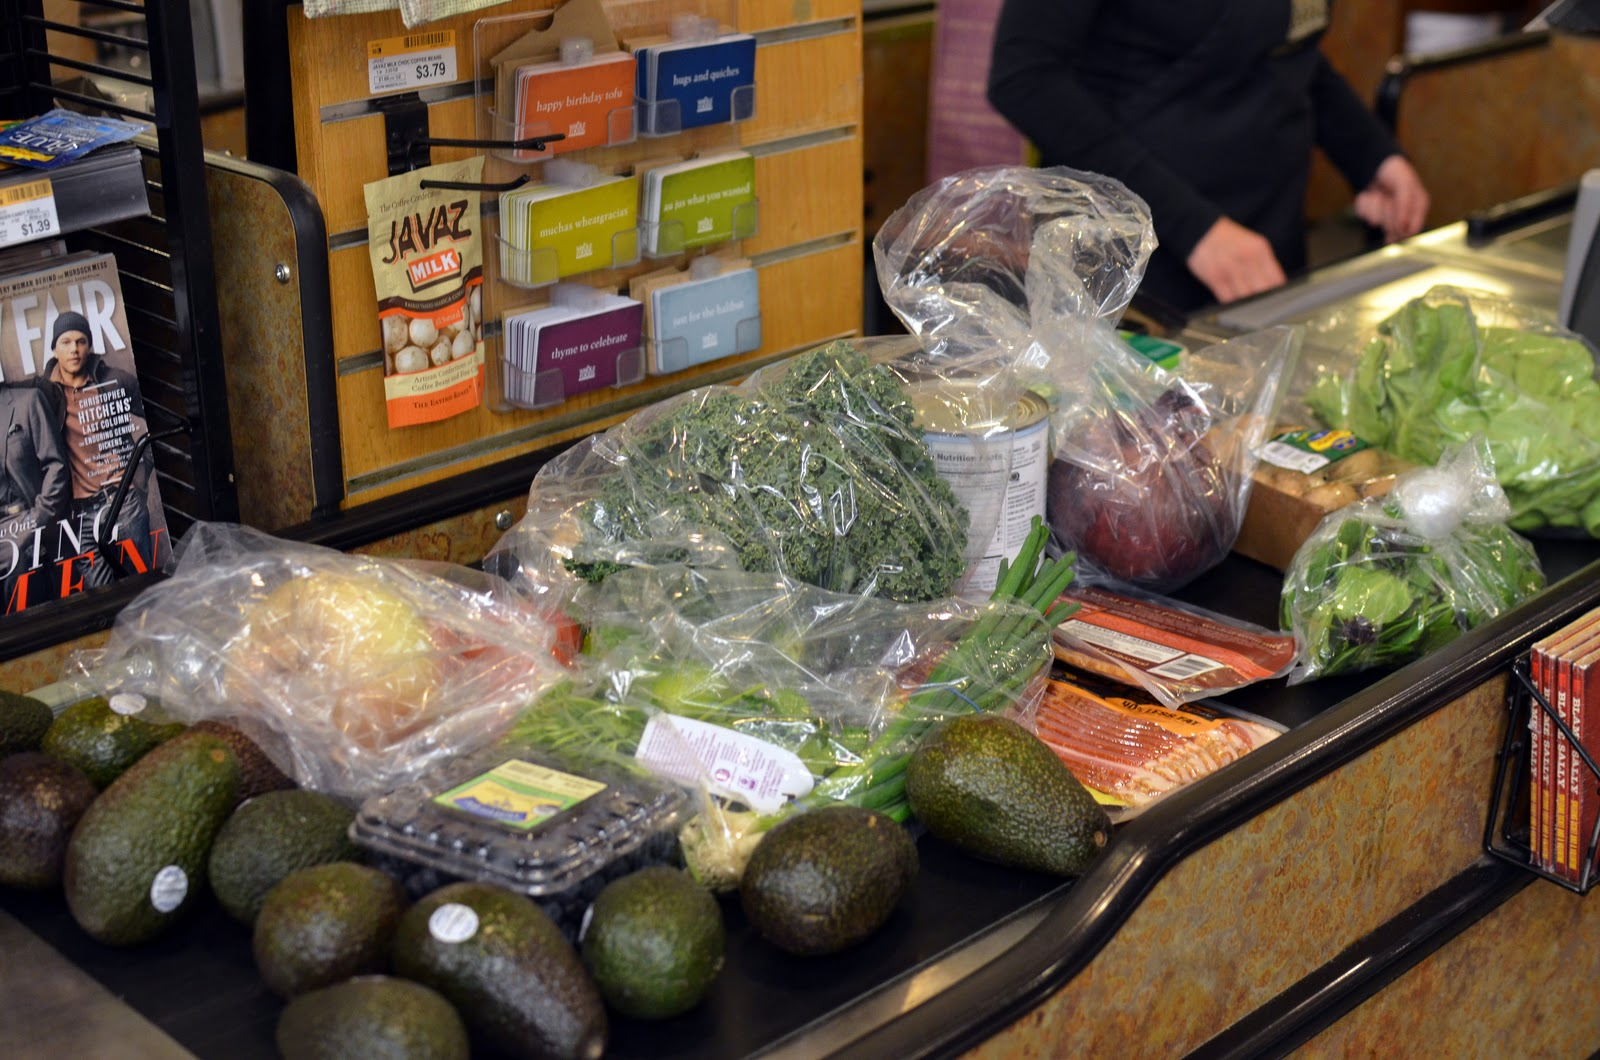 How Much Does Food Shopping Cost In Australia